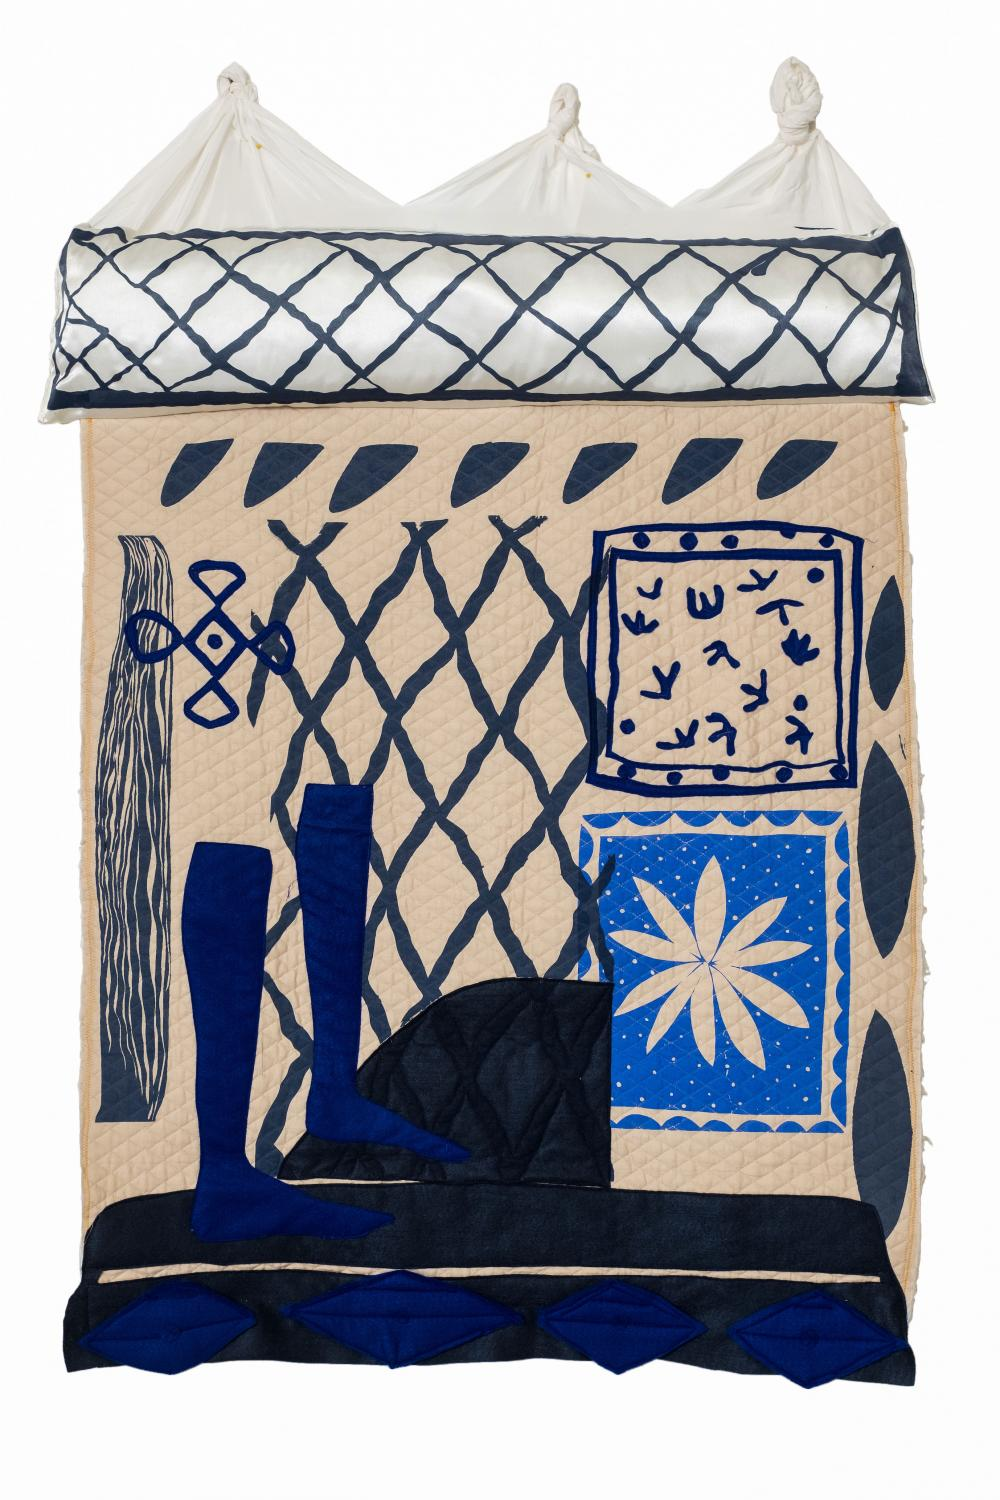 Image of textile print piece from artist Padma Rajendran who guest lectures at the University of Texas at Austin in September 2020